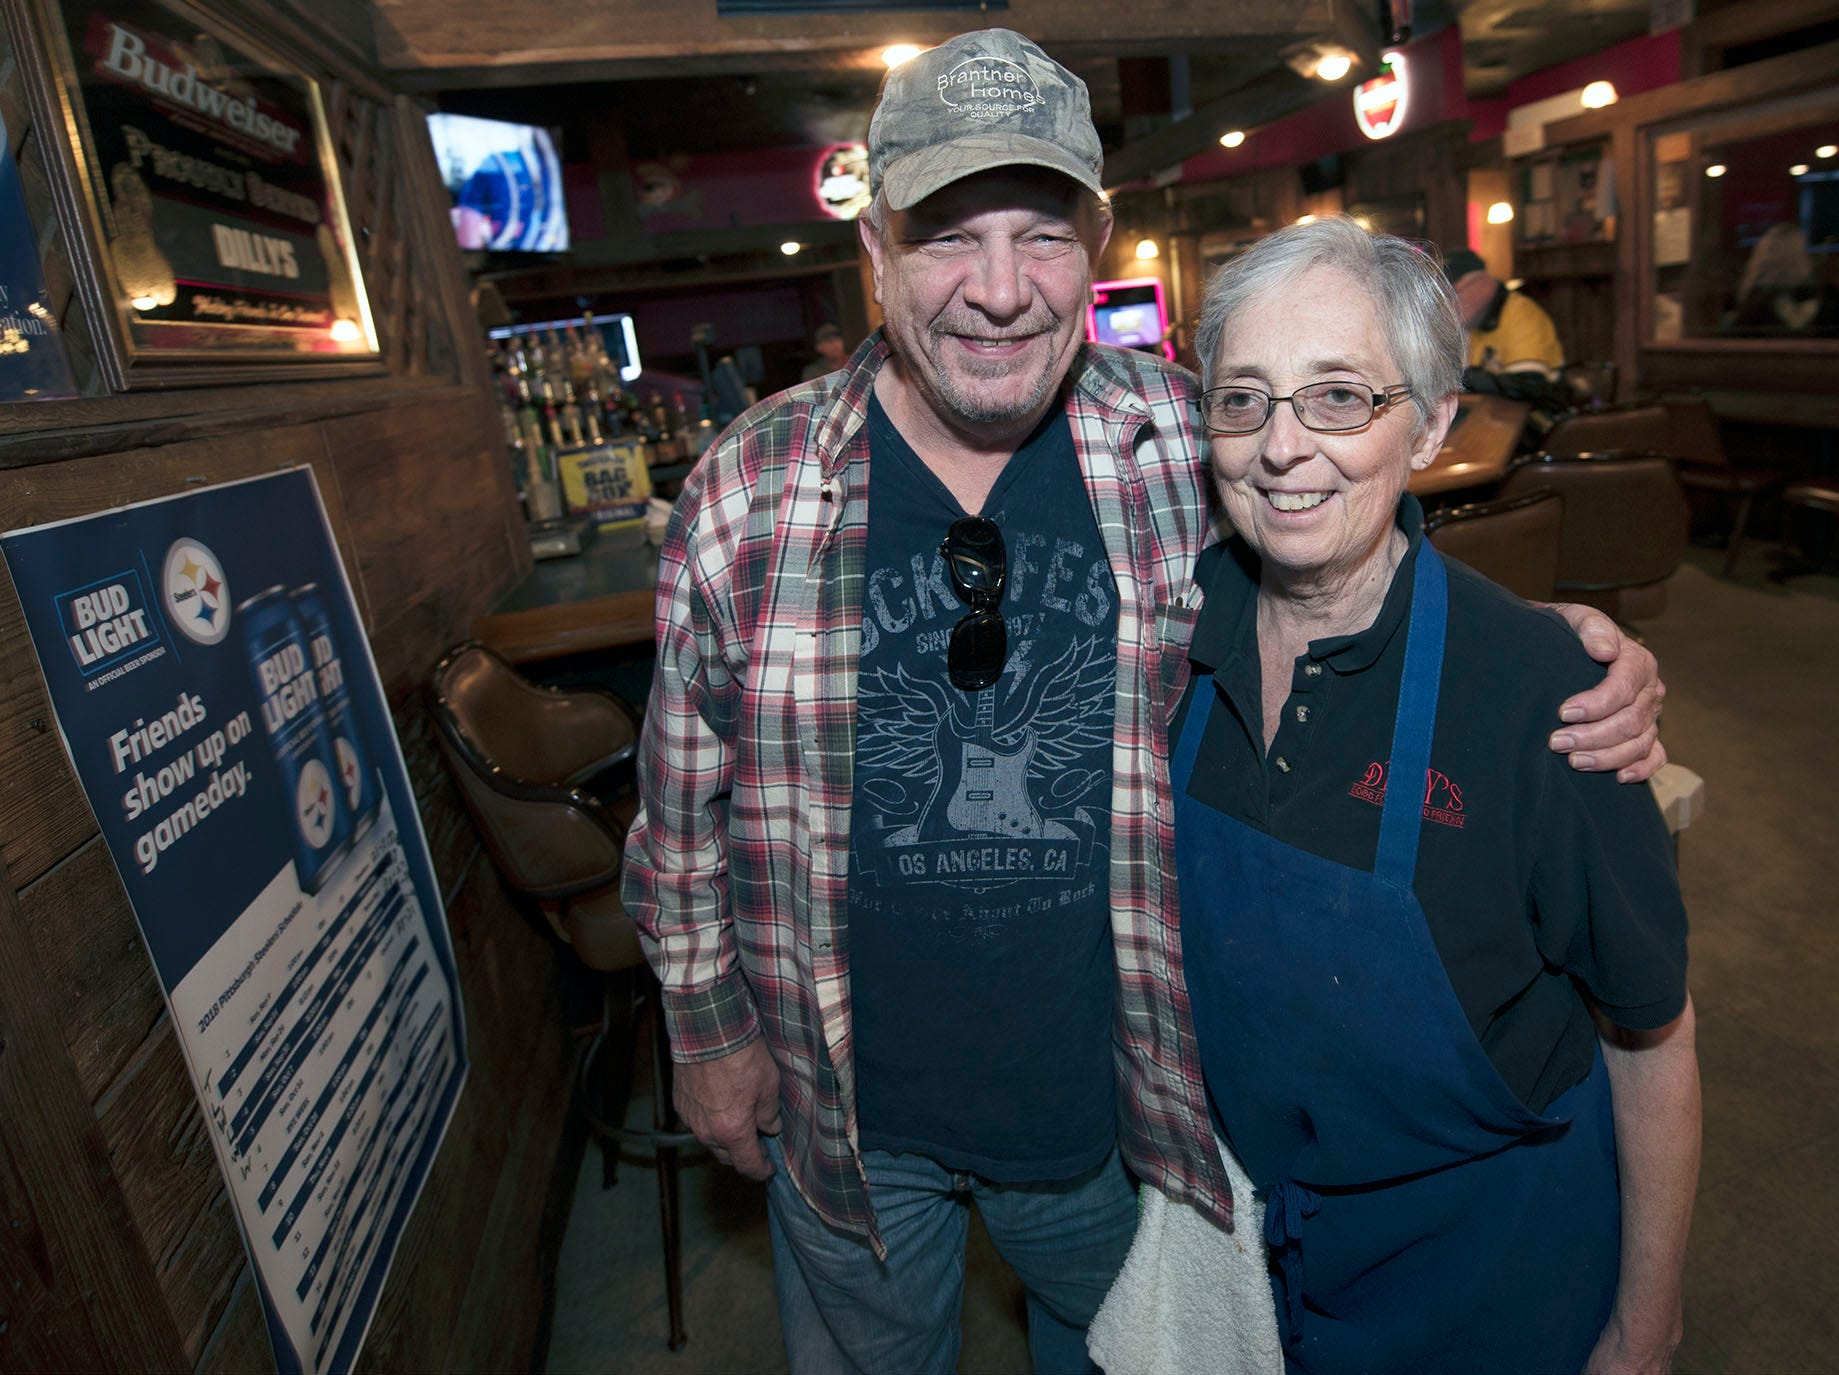 Chuck Orr hugs Sandy Mowen at Dilly's worked at the restaurant for over 20 years. Health problems experienced by Dilly's owners Del Mills and Sandy Mowen were cited as a reason they are closing the Chambersburg restaurant.